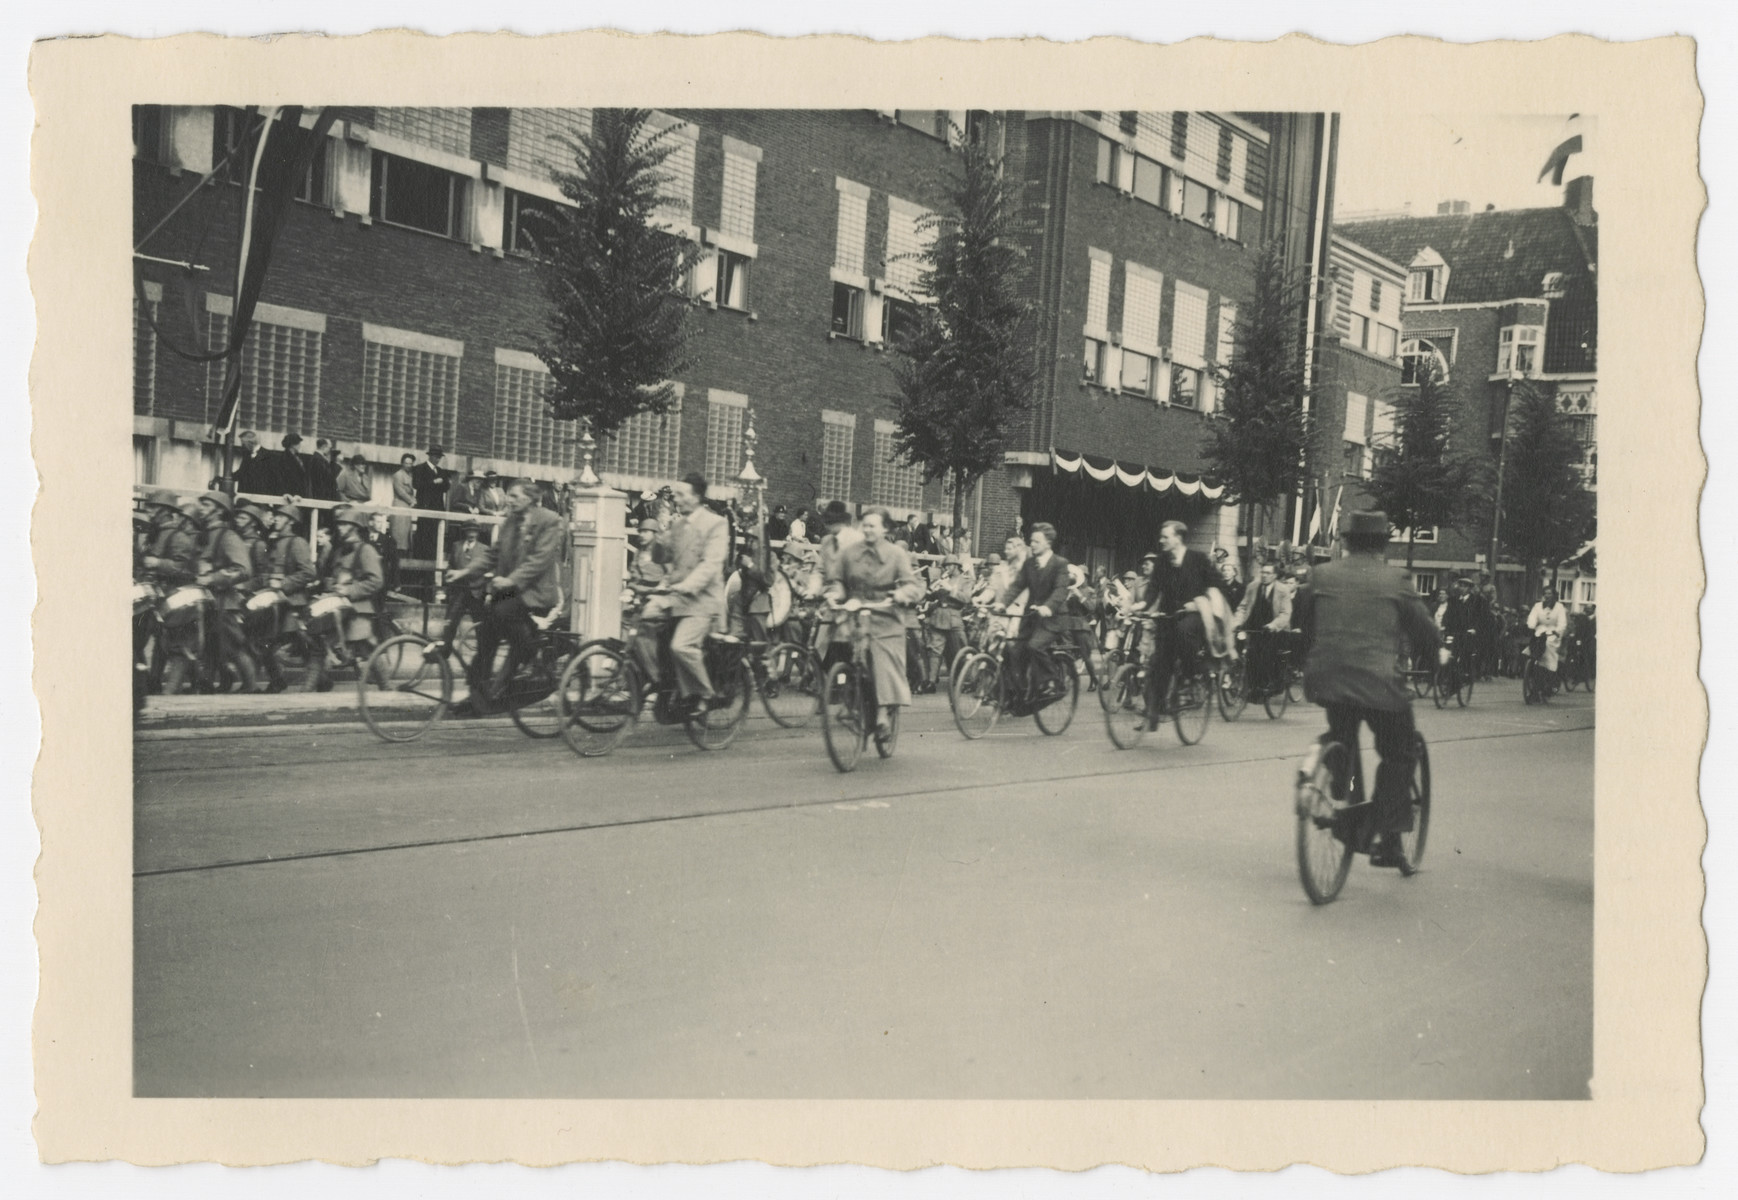 Dutch citizens ride their bicycles during the celebration of the 40th anniversary of Queen Wilhelmina's reign.